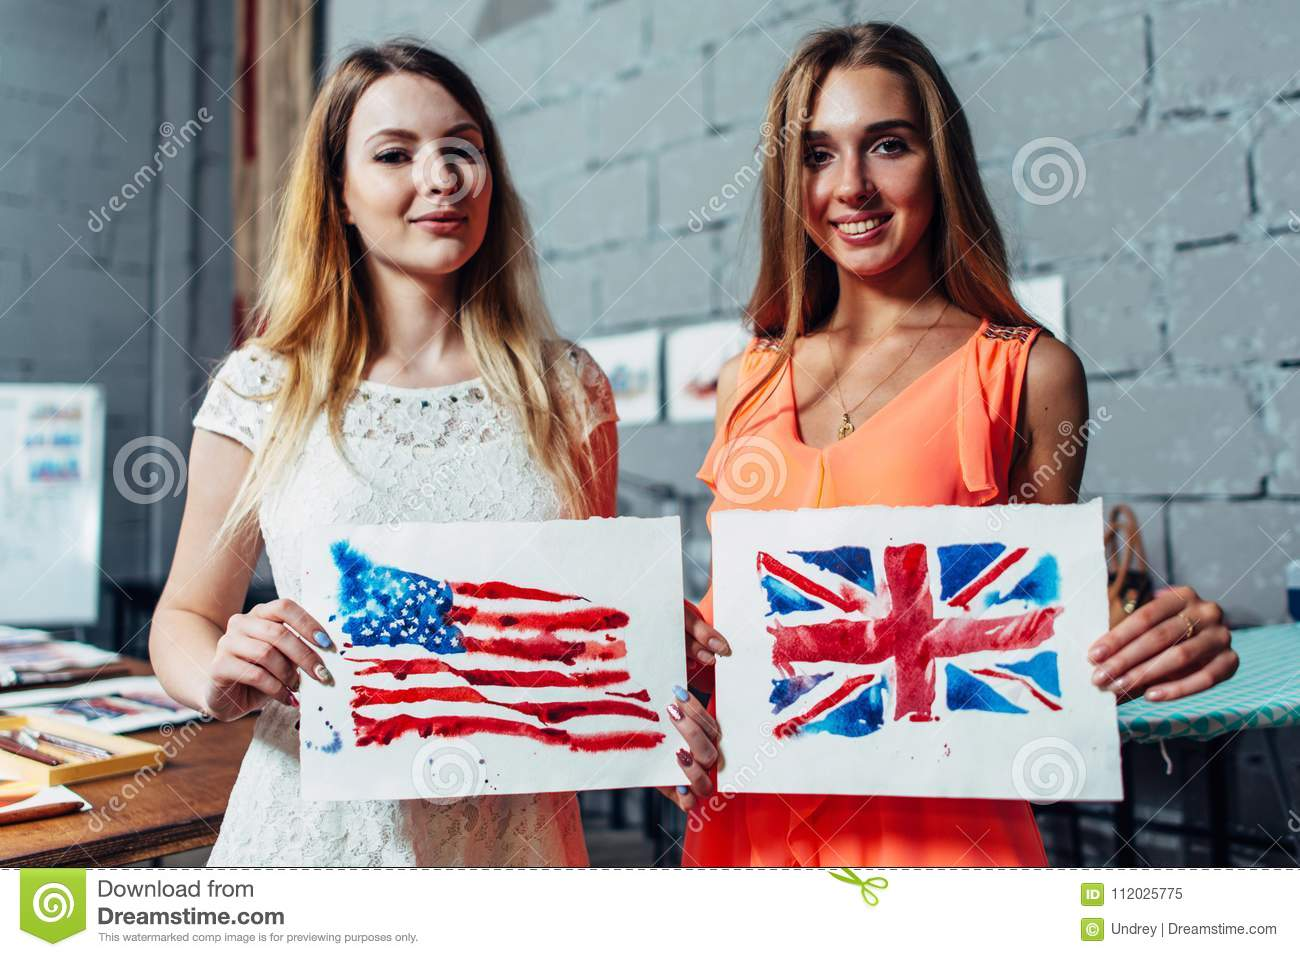 Close-up image of two young women holding a drawing of British and American flags hand-drawn with aquarelle technique on